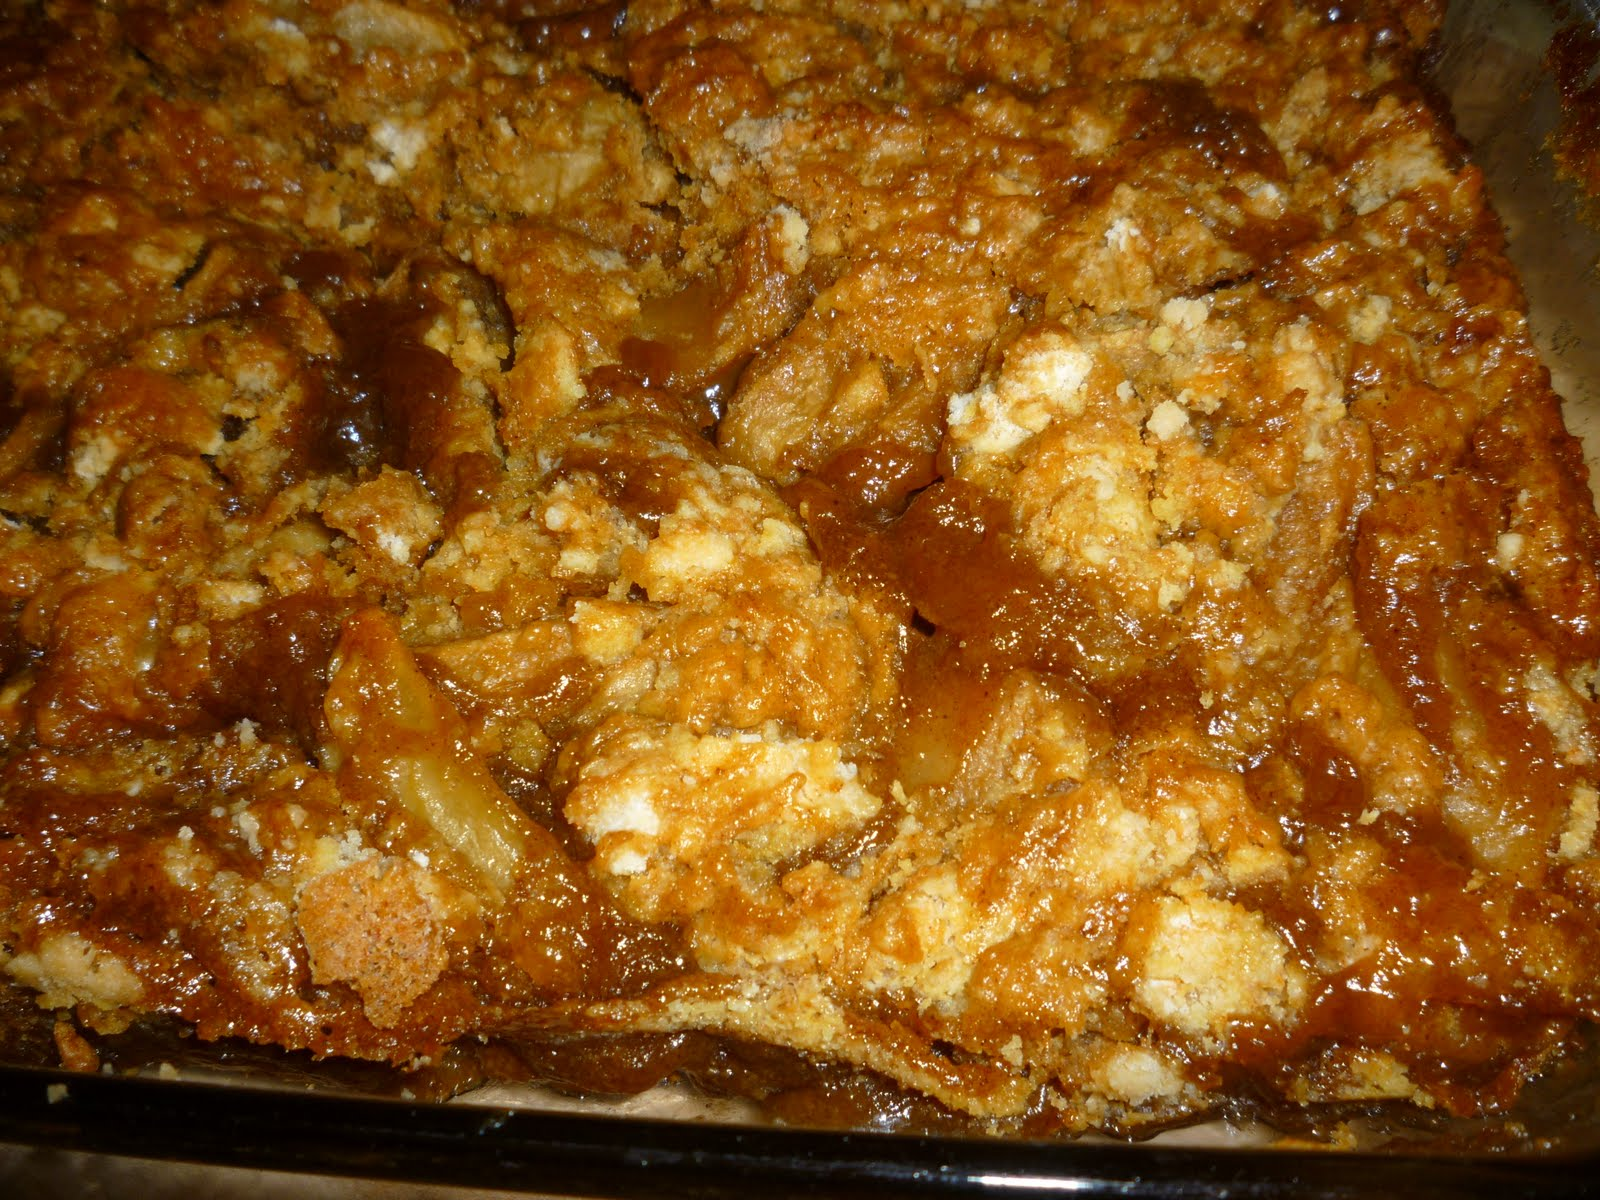 Here's an Apple Cobbler that has become our family's favorite dessert.